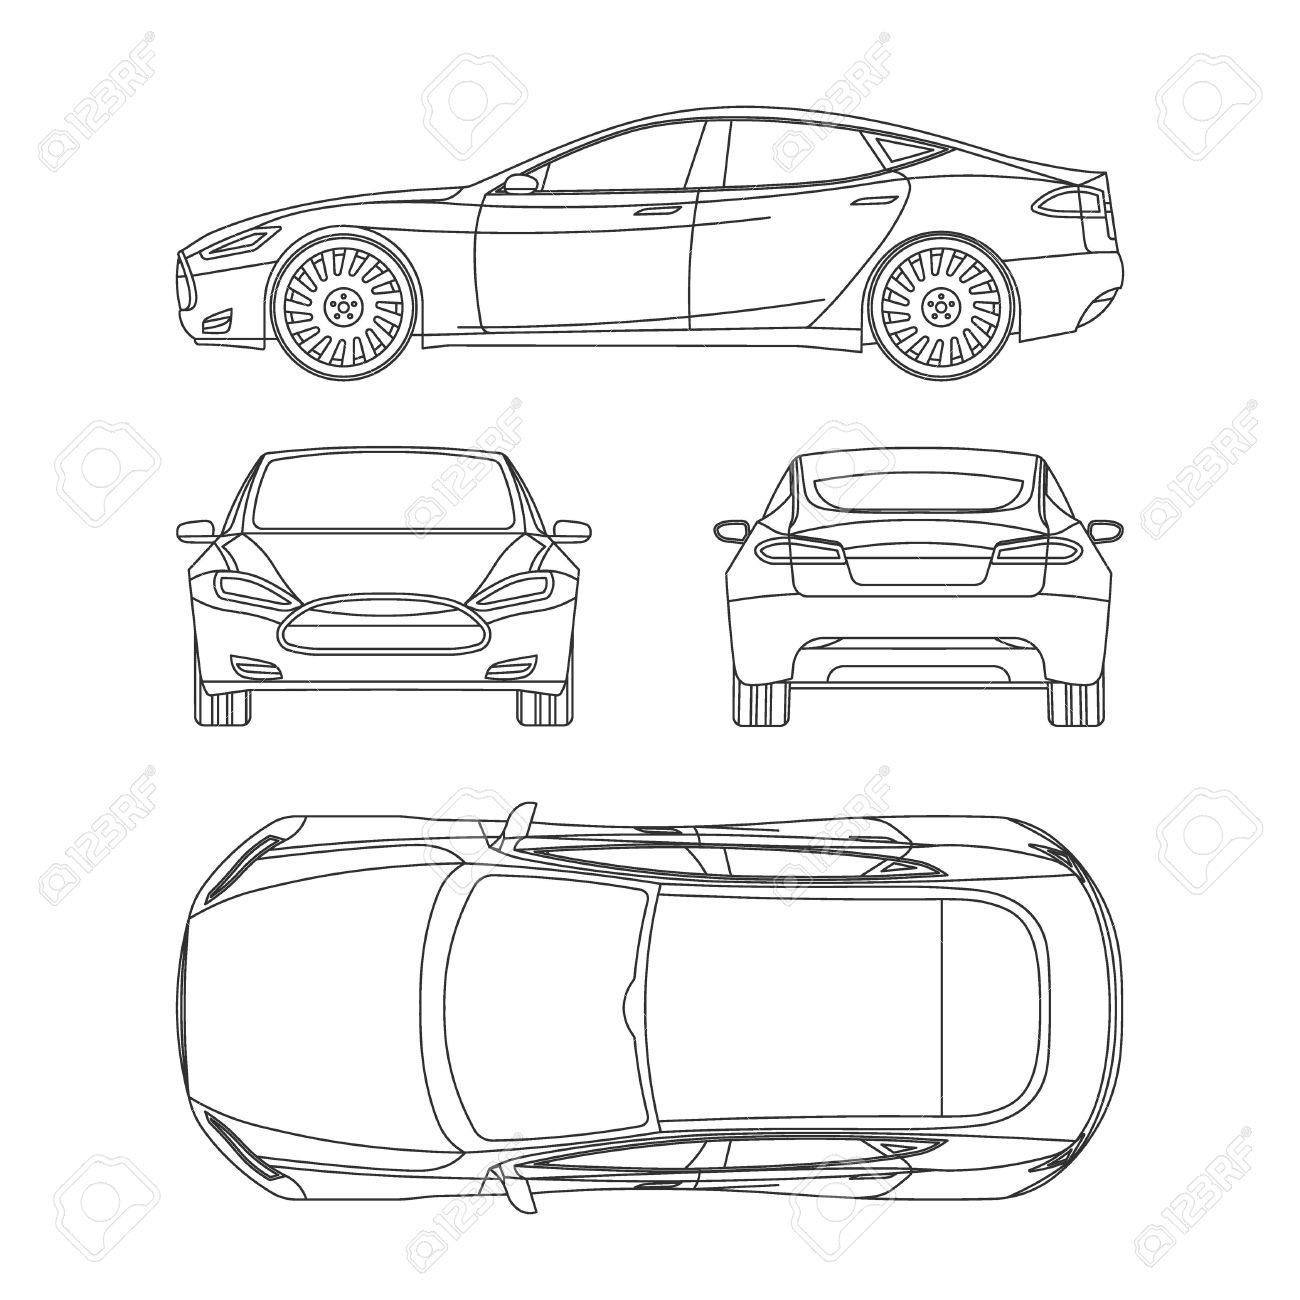 Car Line Draw Insurance, Rent Damage, Condition Report Form Blueprint Throughout Car Damage Report Template